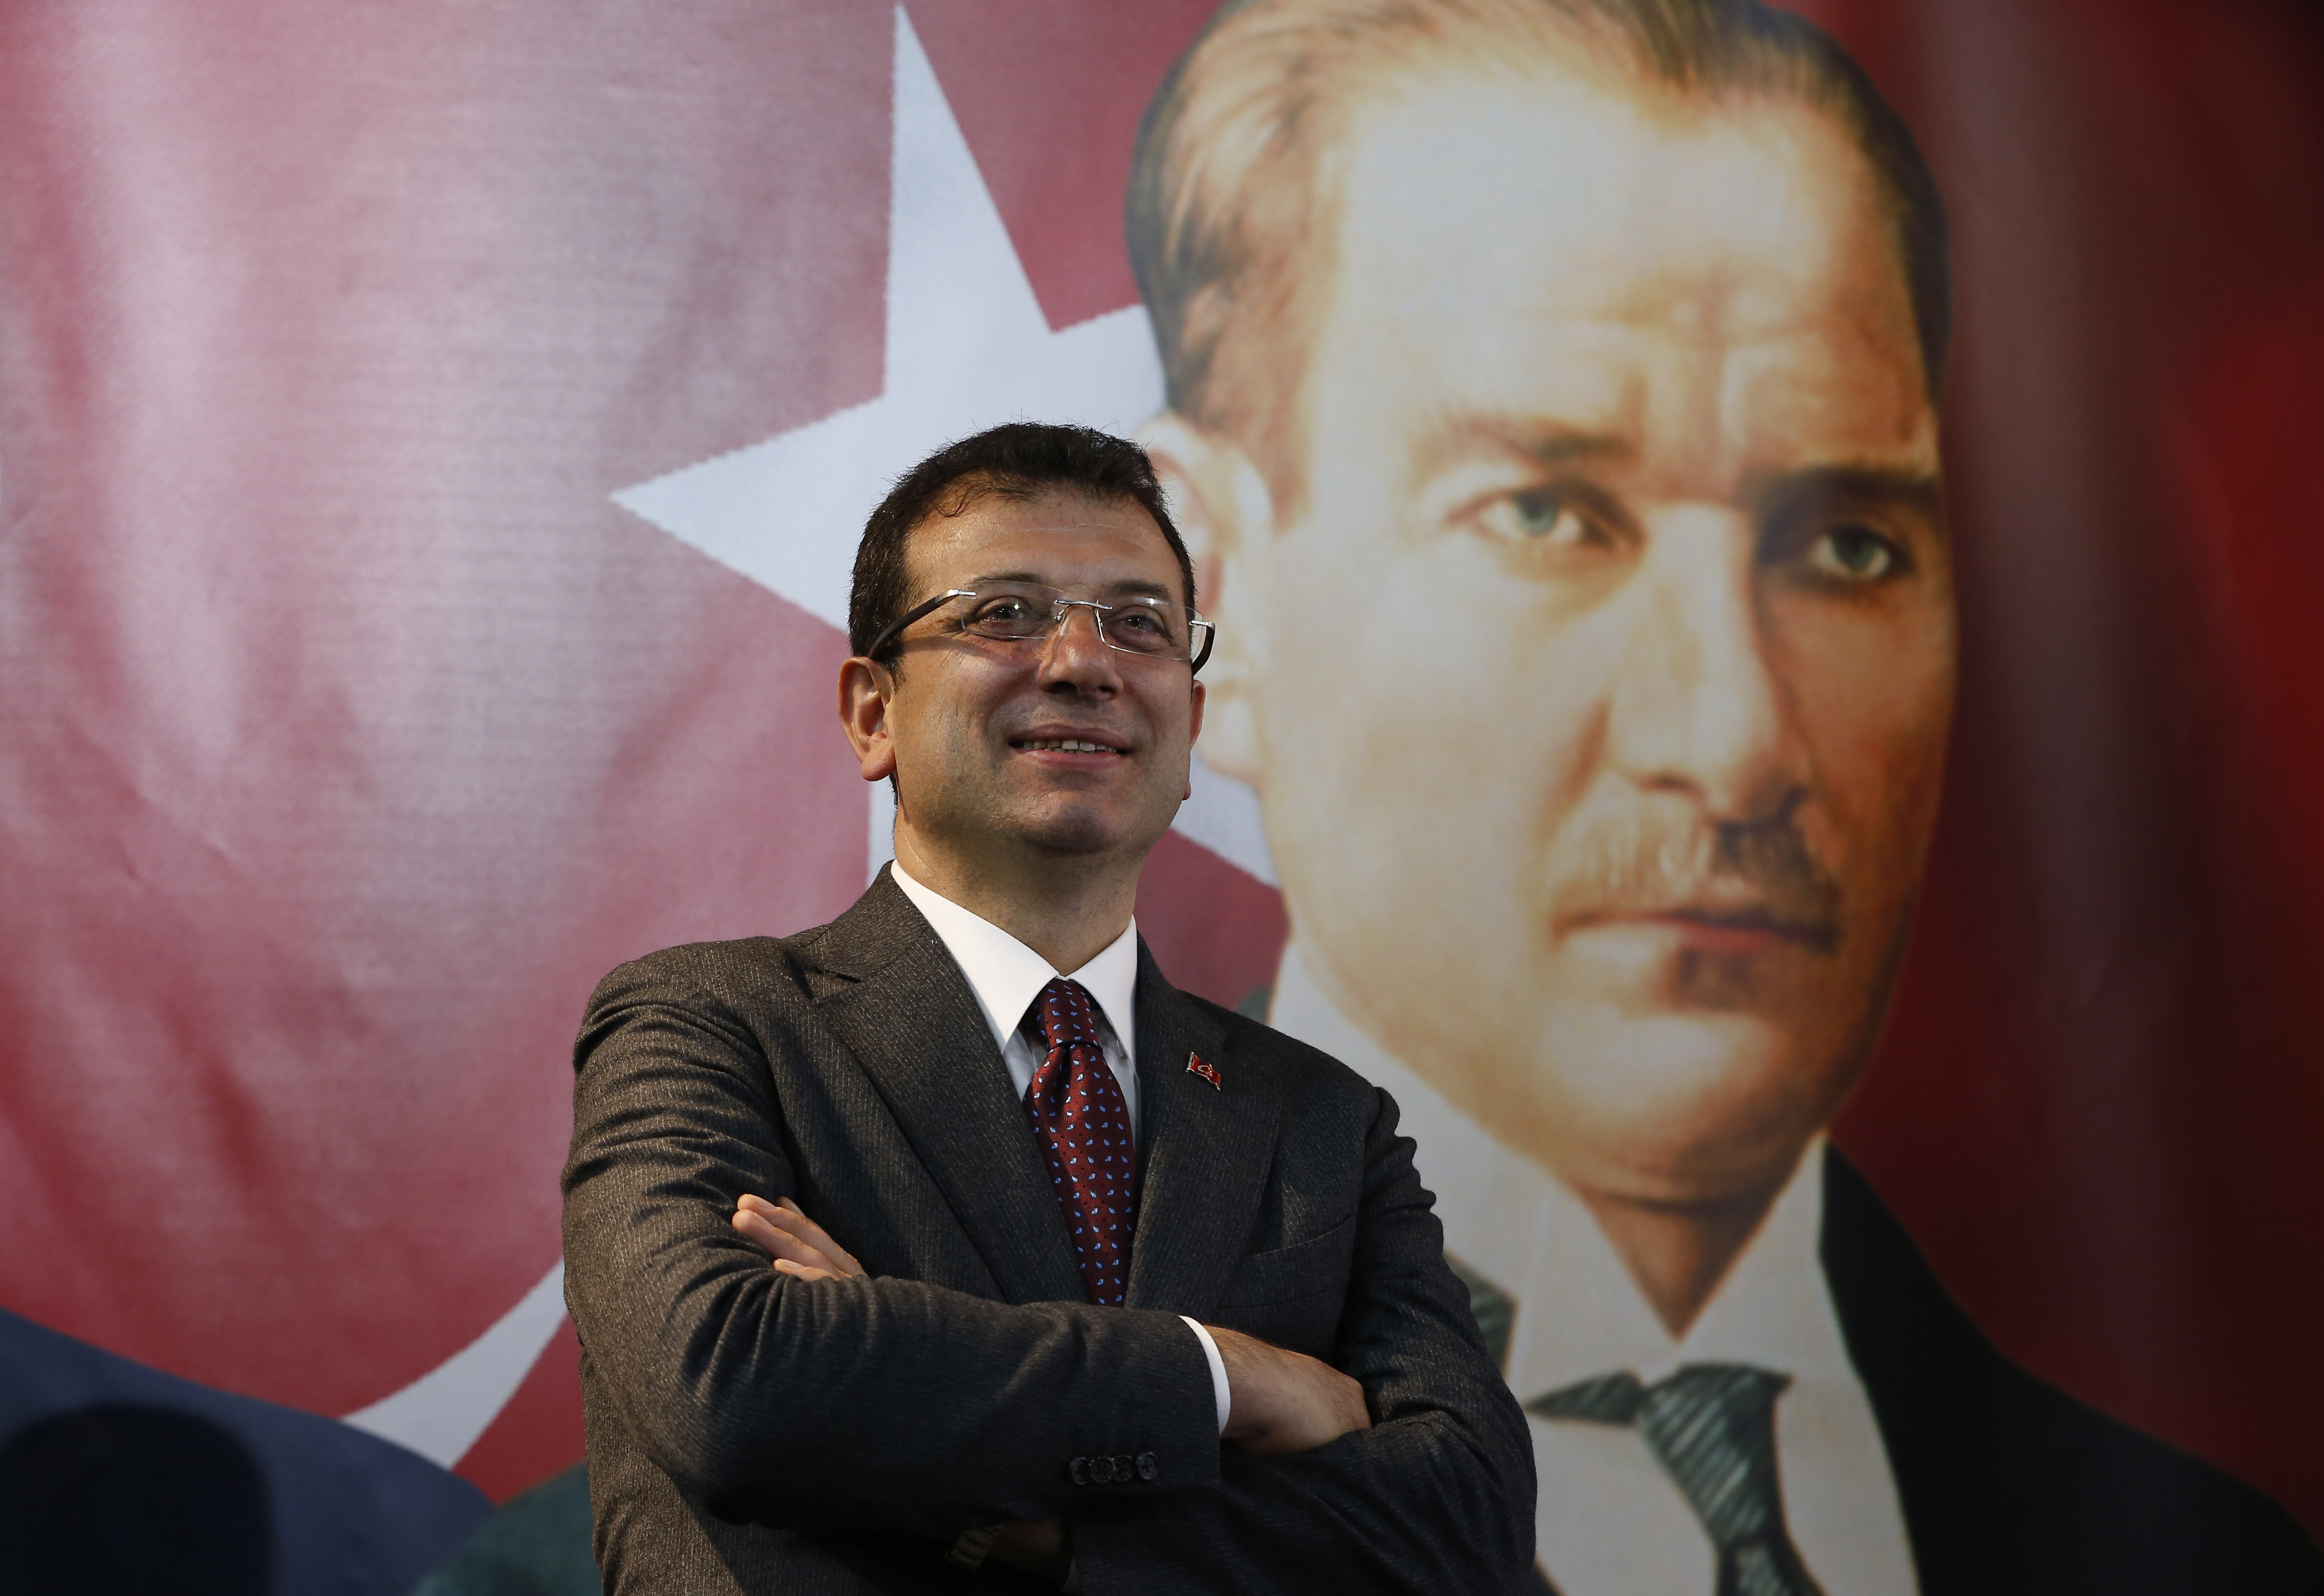 In this Thursday, April 4, 2019 photo, backdropped by a poster of modern Turkey's founder Mustafa Kemal Ataturk, right, Ekrem Imamoglu, the opposition, Republican People's Party's (CHP) mayoral candidate in Istanbul, poses for The Associated Press following an interview in Istanbul. The mood among opposition supporters in Turkey's biggest city is one of jubilation but also worry - fear that their win in Istanbul's mayoral race could be overturned in a recount taking place after the ruling party challenged the election results. (AP Photo/Lefteris Pitarakis)